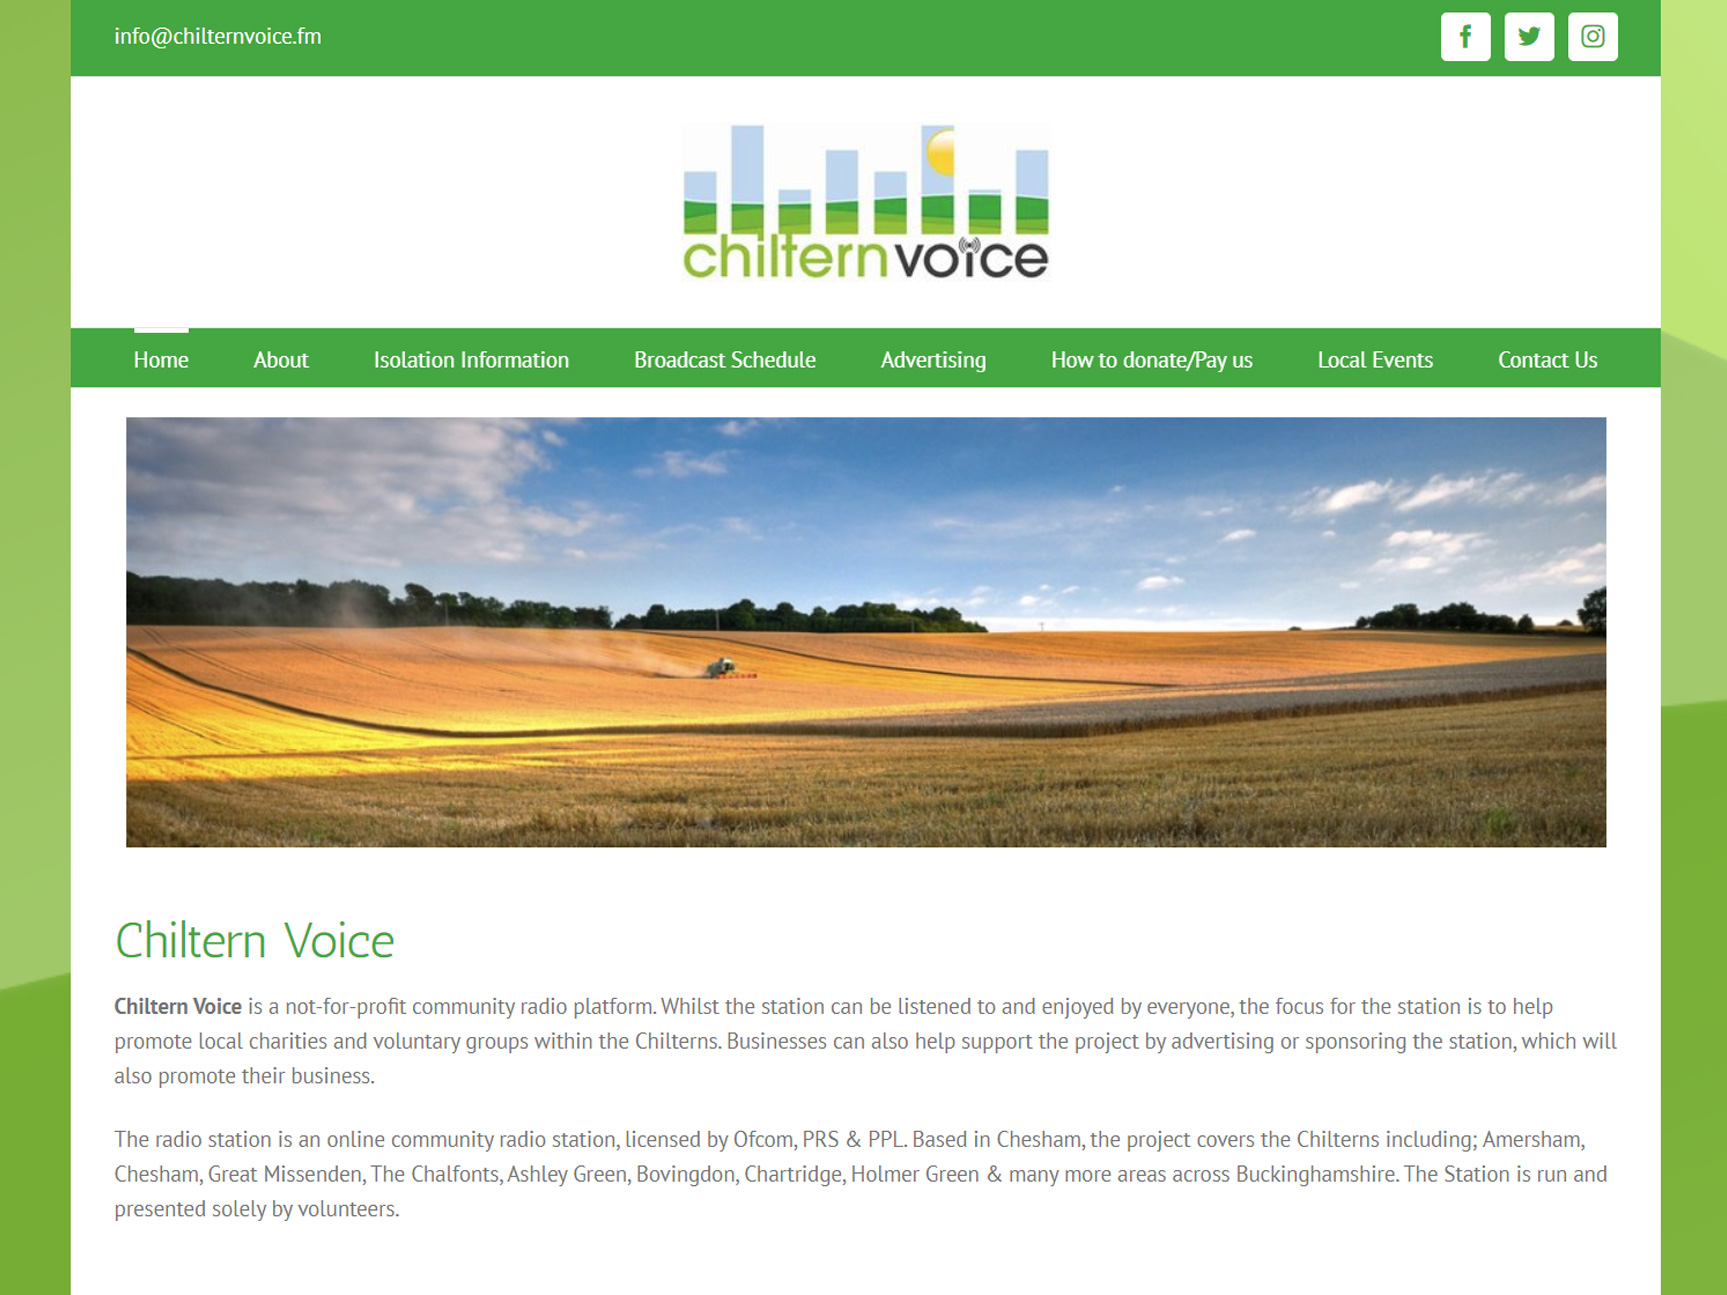 chiltern-voice-radio-website-design